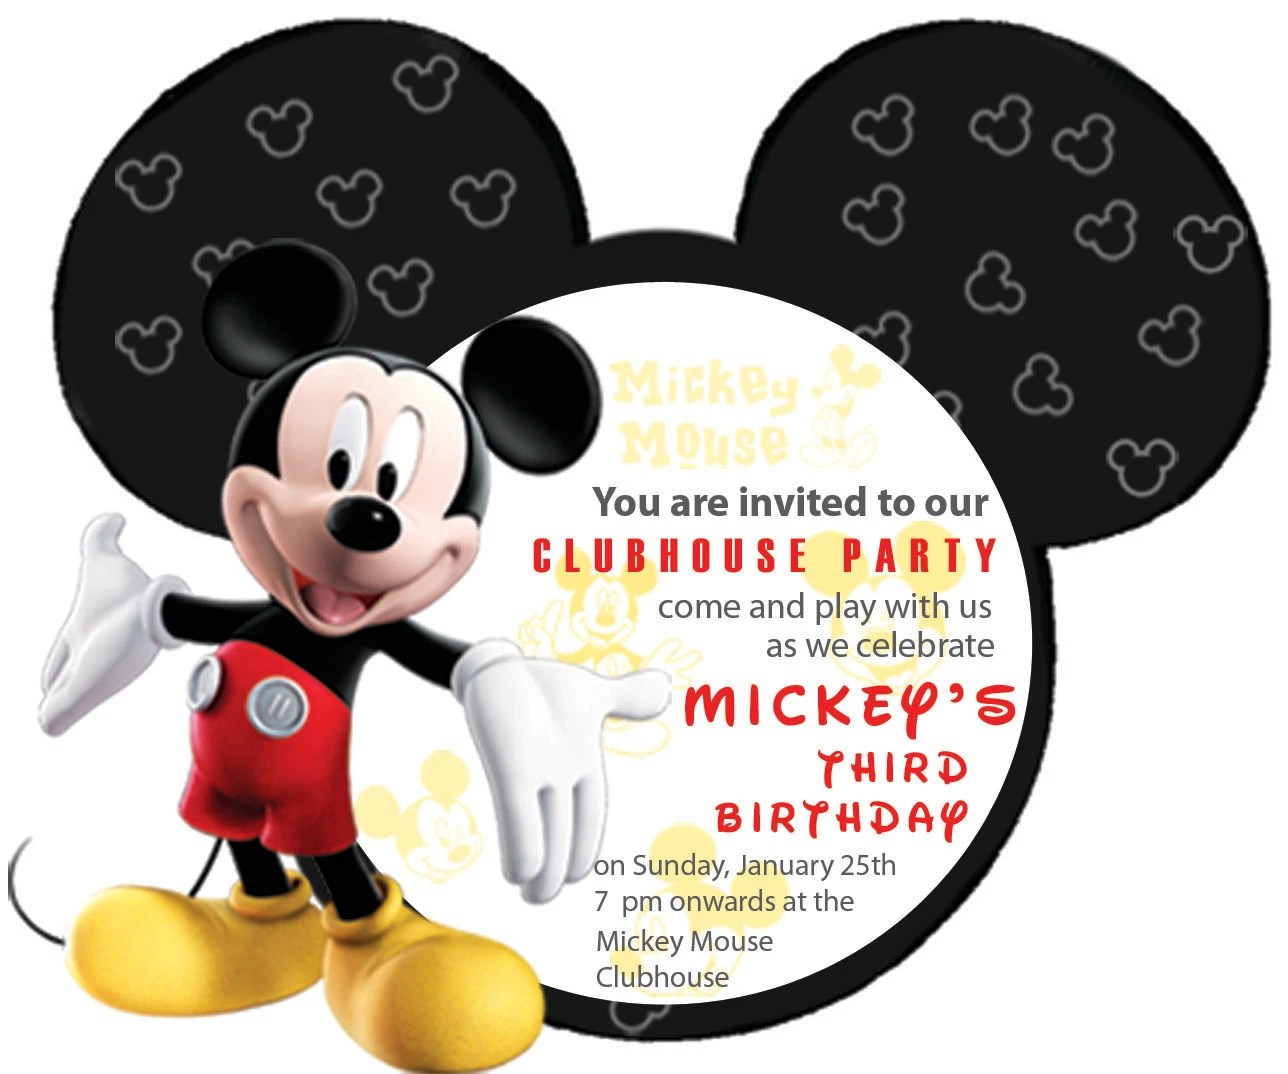 customise this mickey mouse invitation card for your party